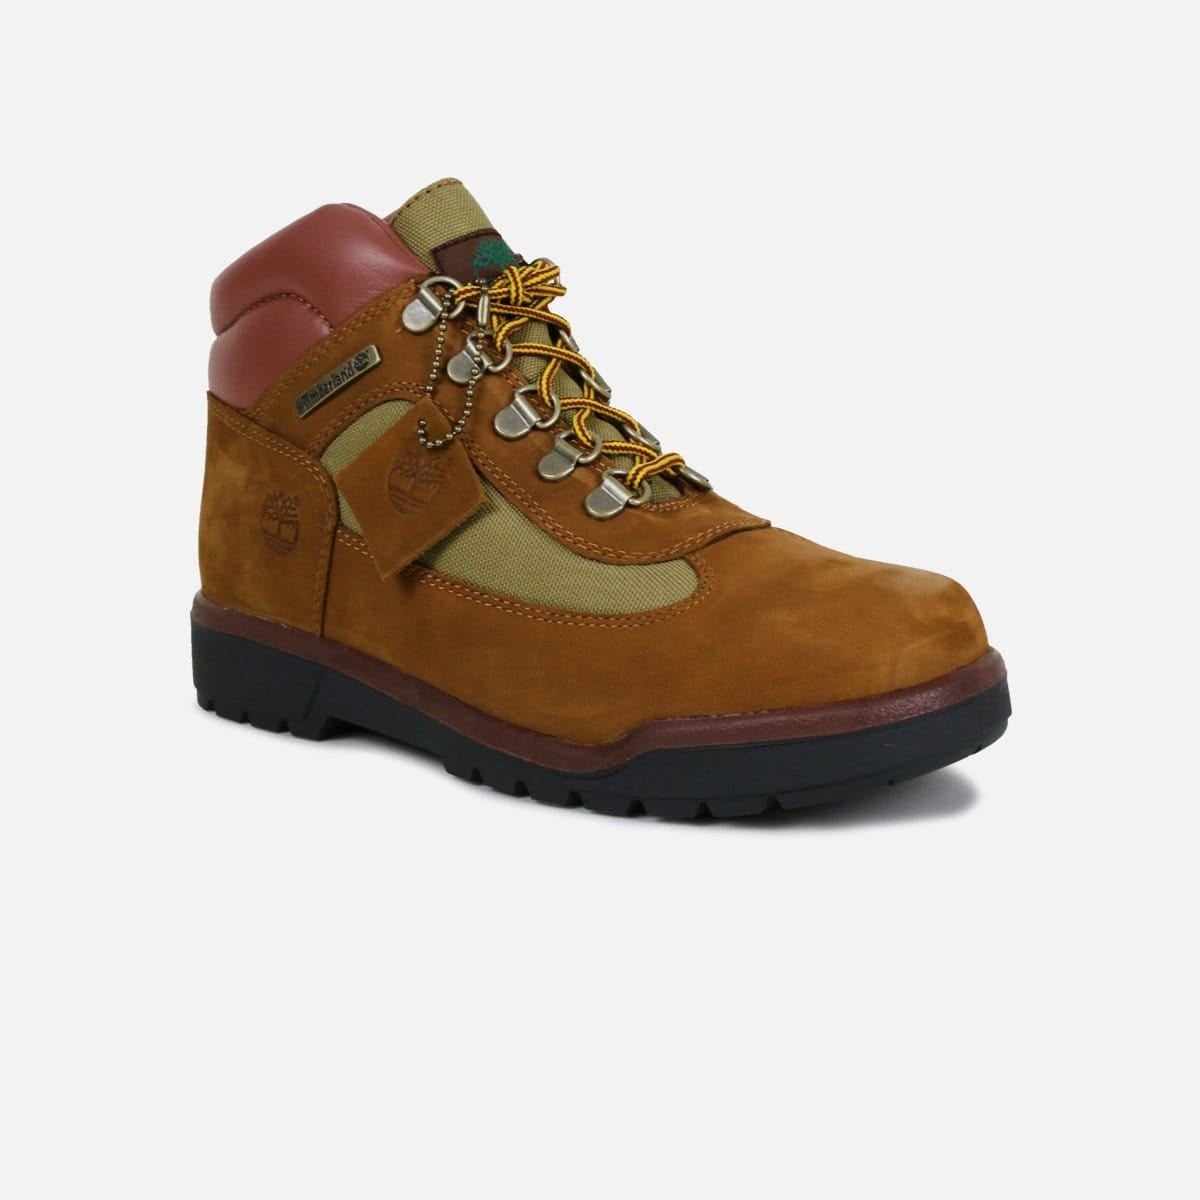 RUVilla.com is where to buy theTimberland Field Boot Pre-School (Sundance)!